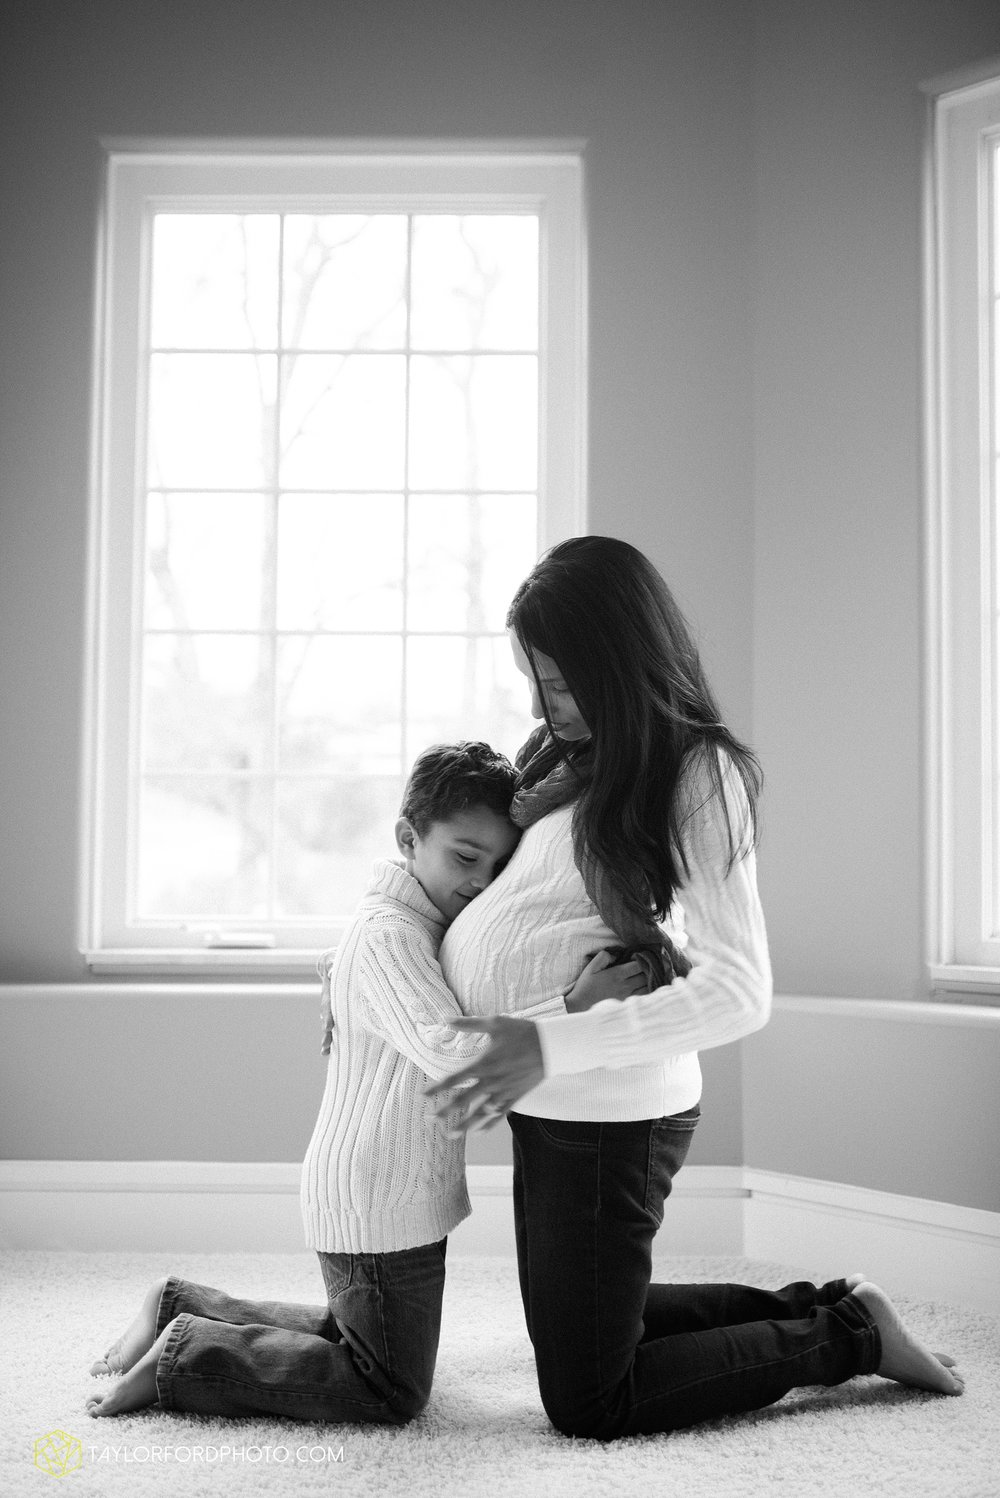 brentwood_nashville_tennessee_maternity_lifestyle_photographer_taylor_ford_4332.jpg